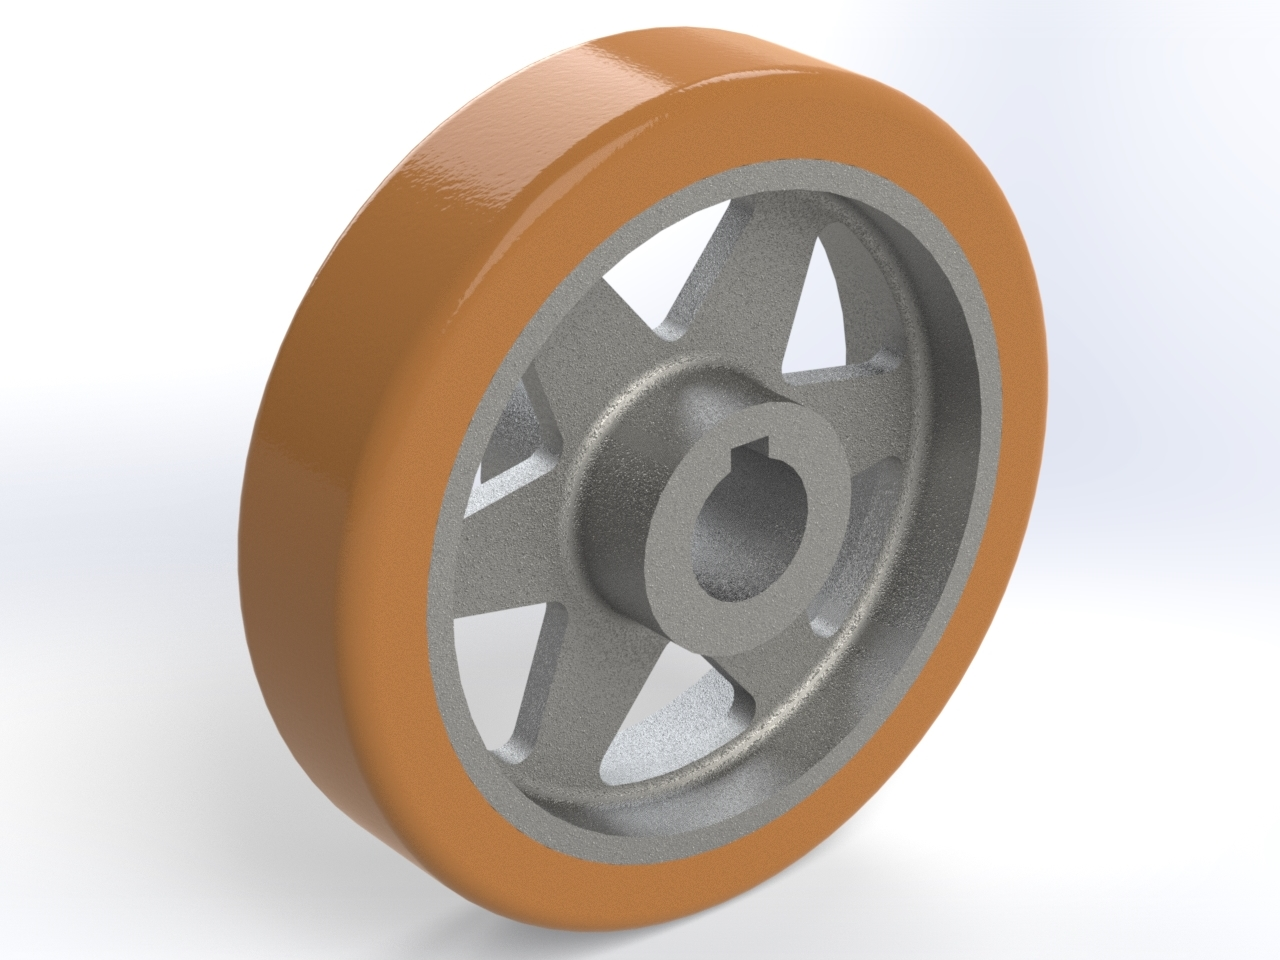 Series VS H7 bore with keyway, Drive wheels with thick tread (width <100mm)